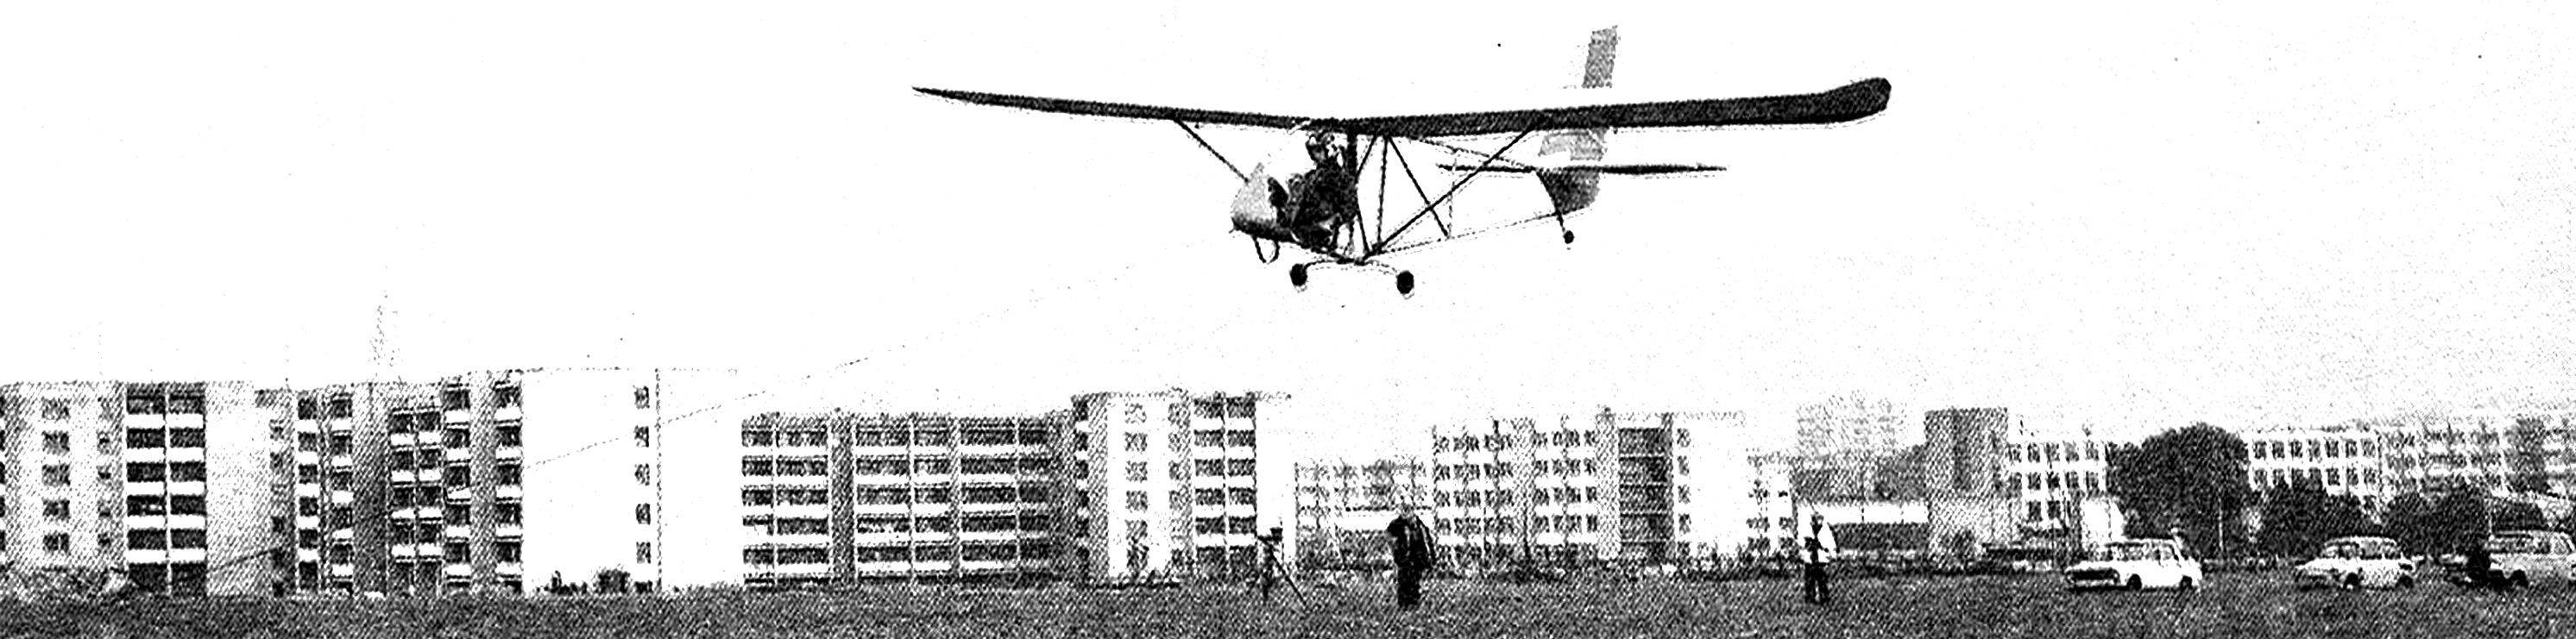 In the air — glider LAK-16 created on Prenasam glider factory DOSAAF.